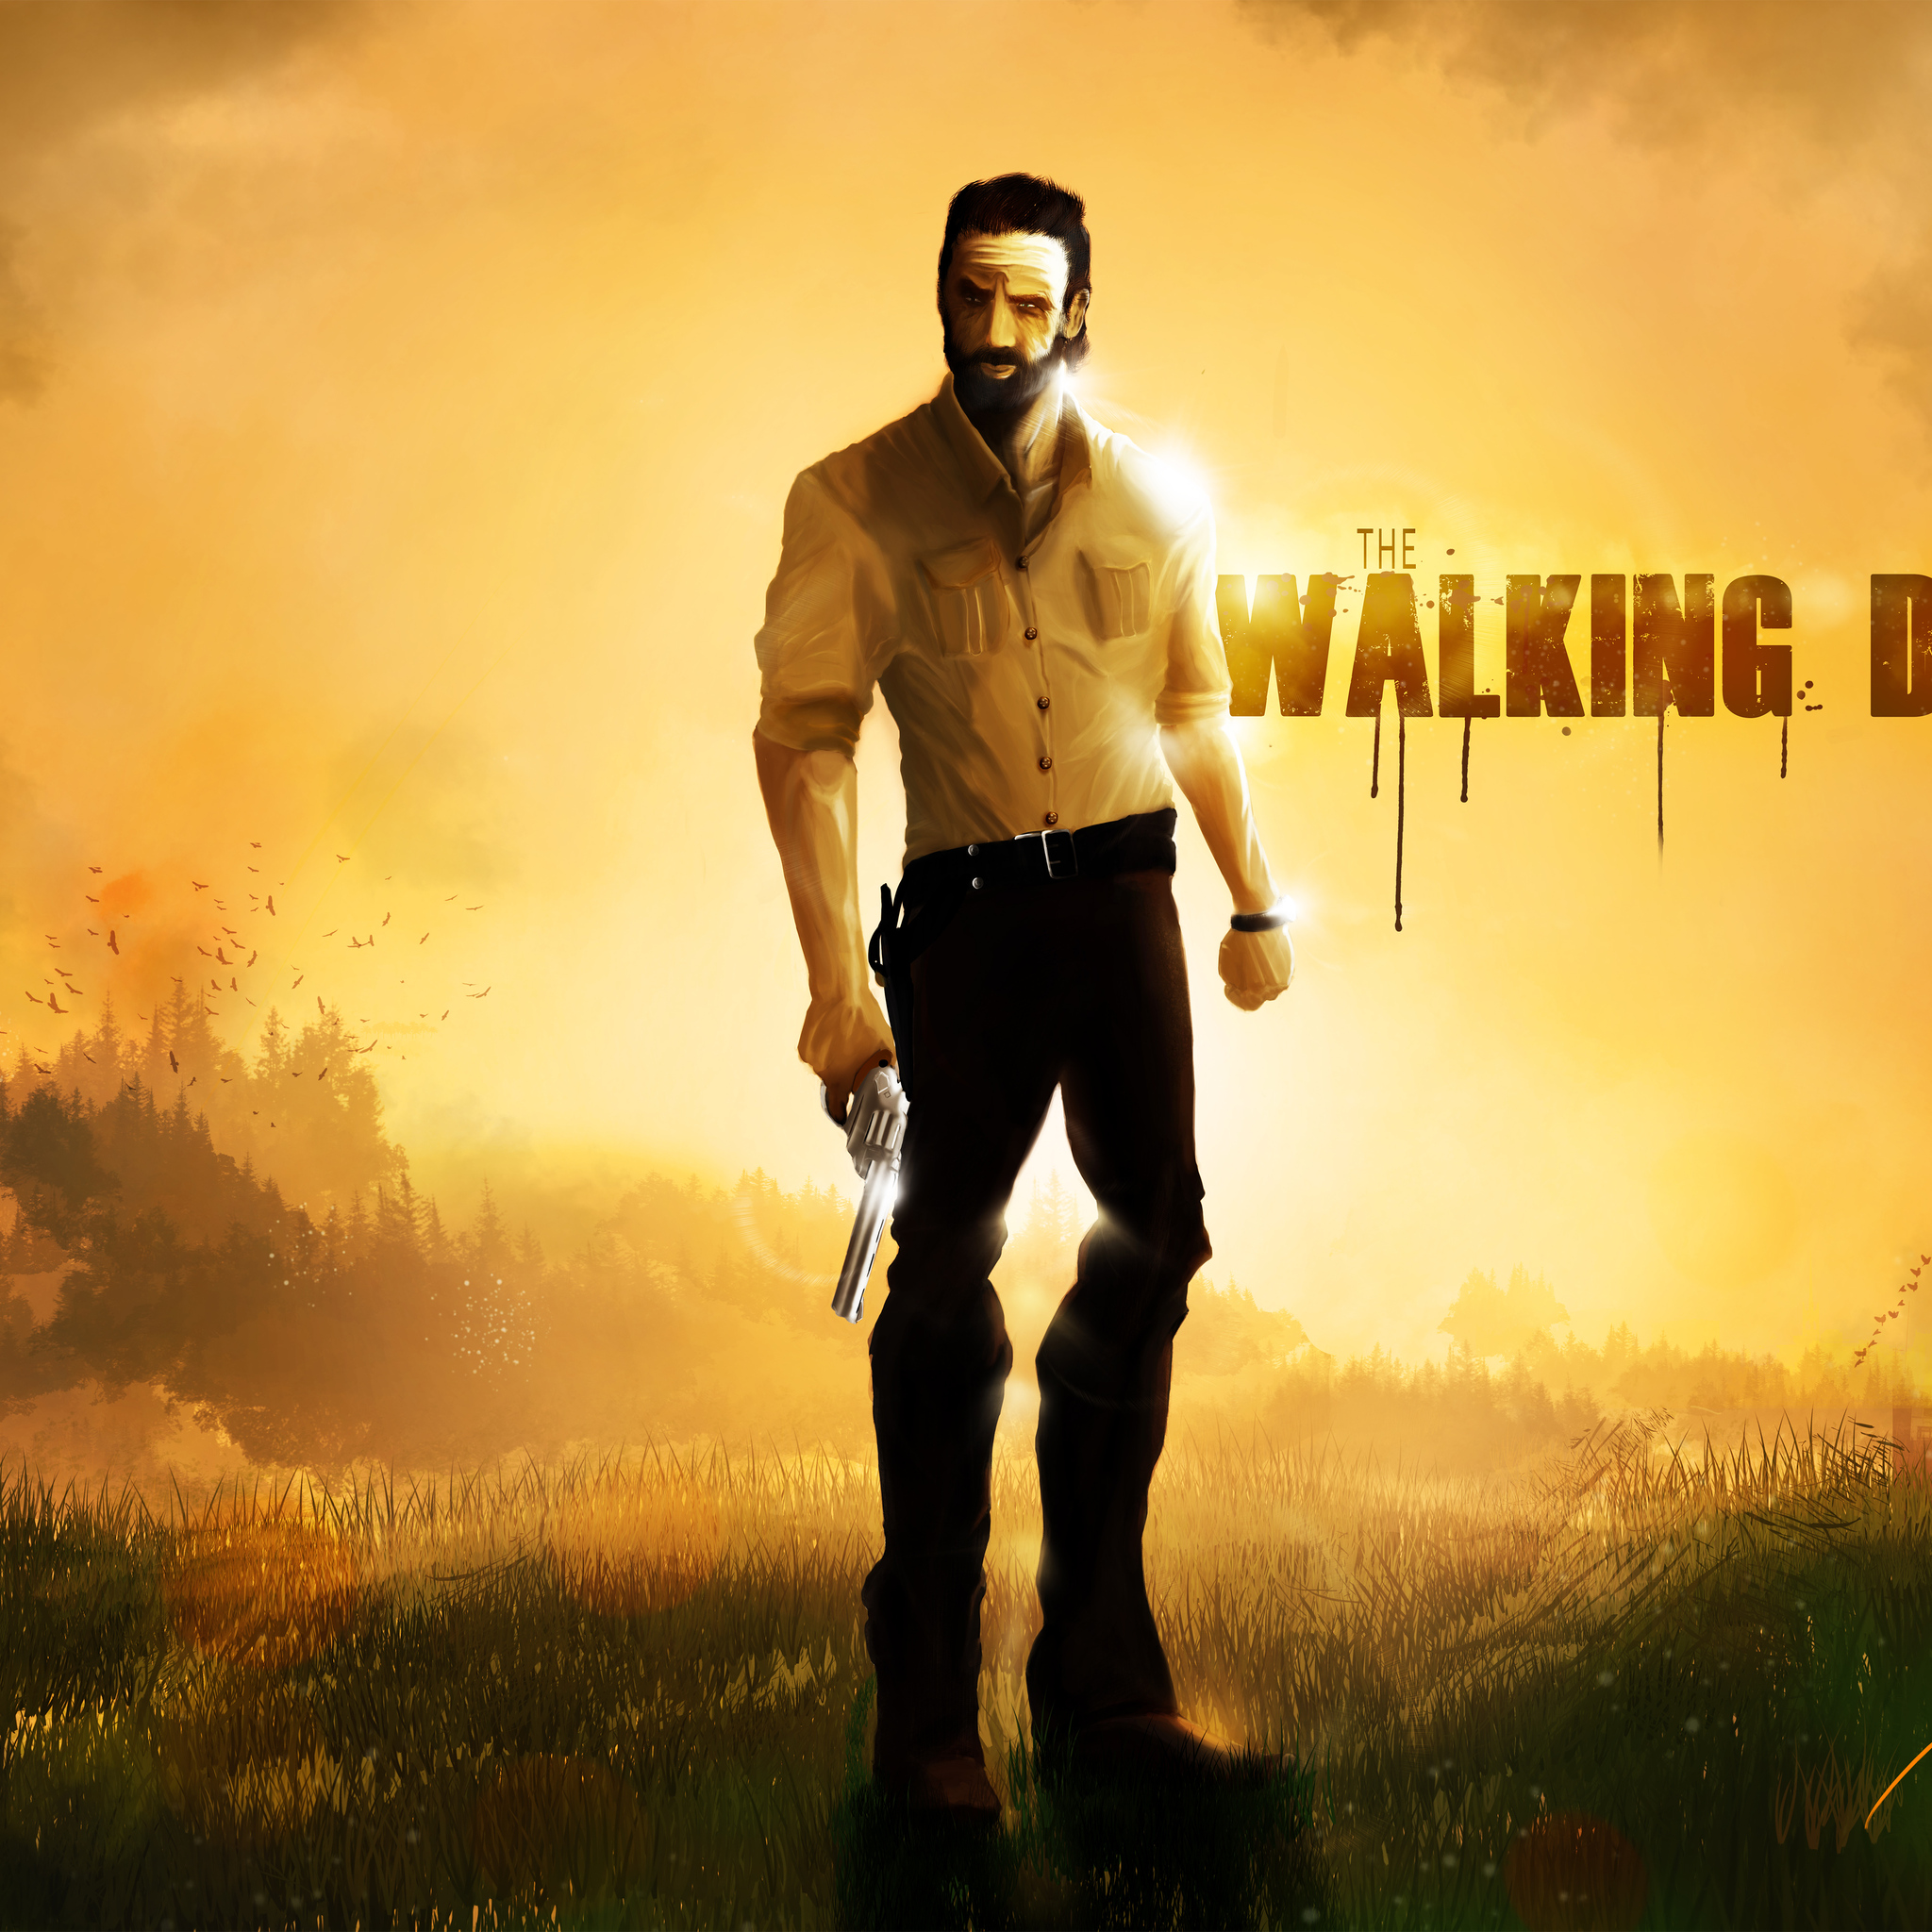 2048x2048 Rick Grimes The Walking Dead 5k Artwork Ipad Air Hd 4k